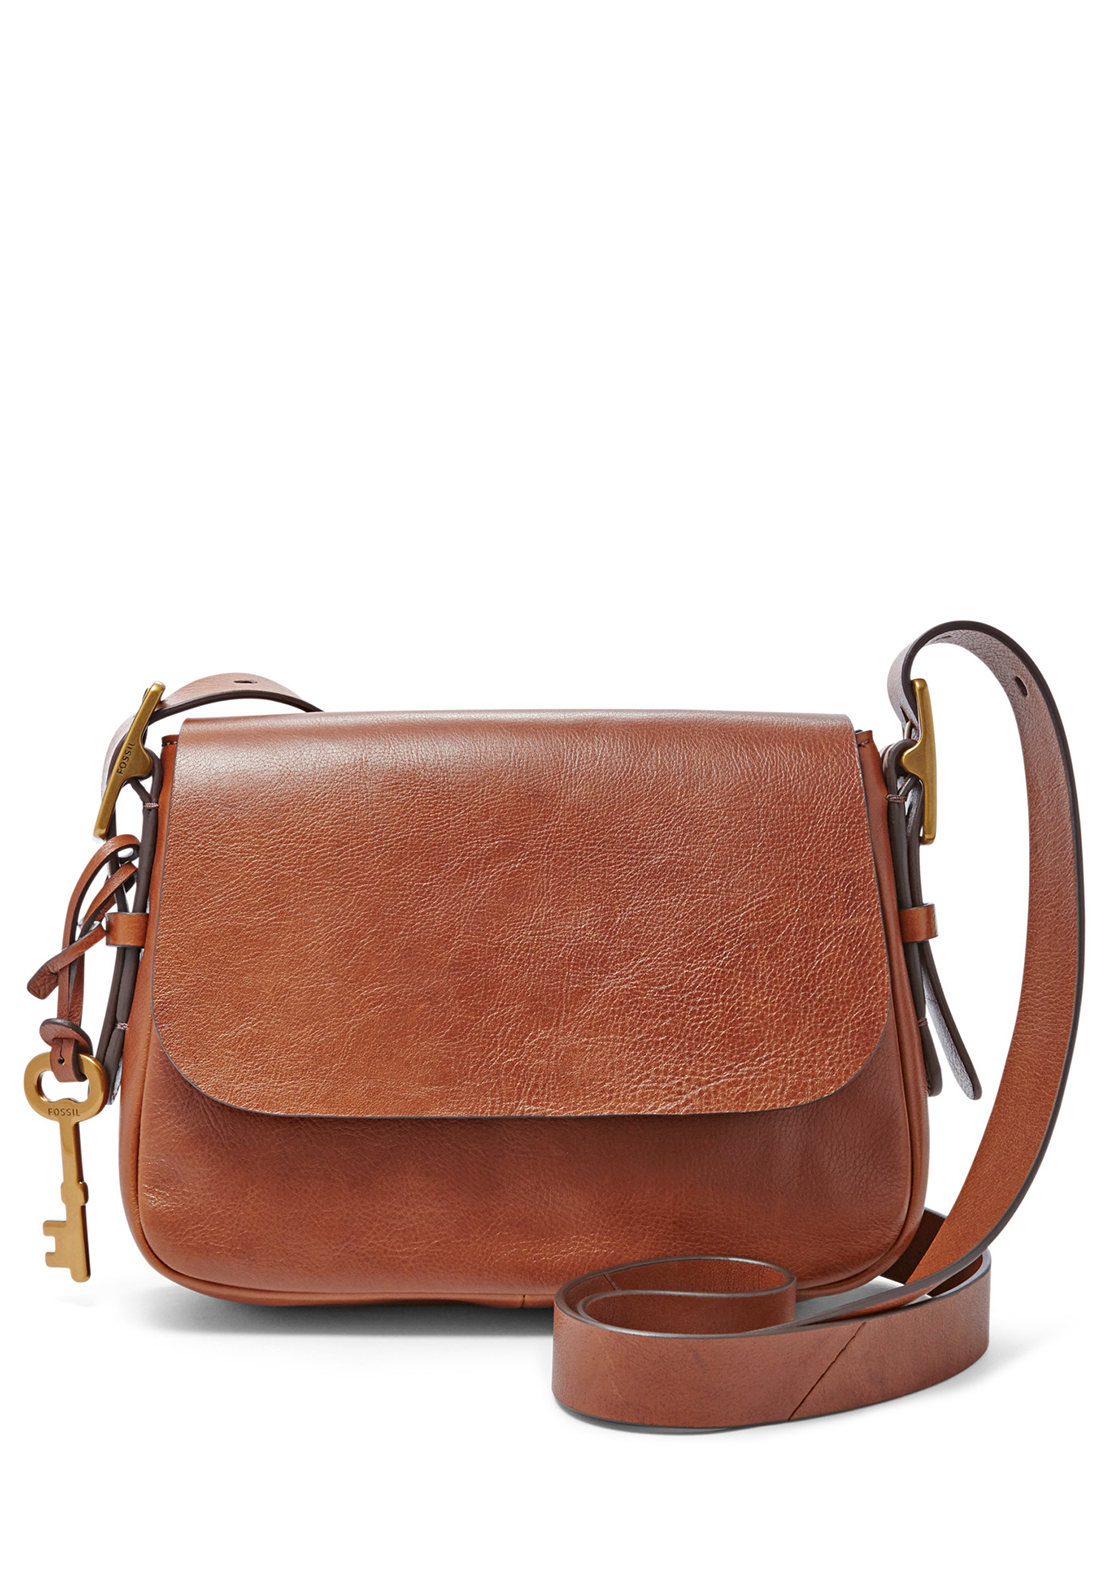 Fossil Preston Harper Small Leather Saddle Crossbody Bag, Brown